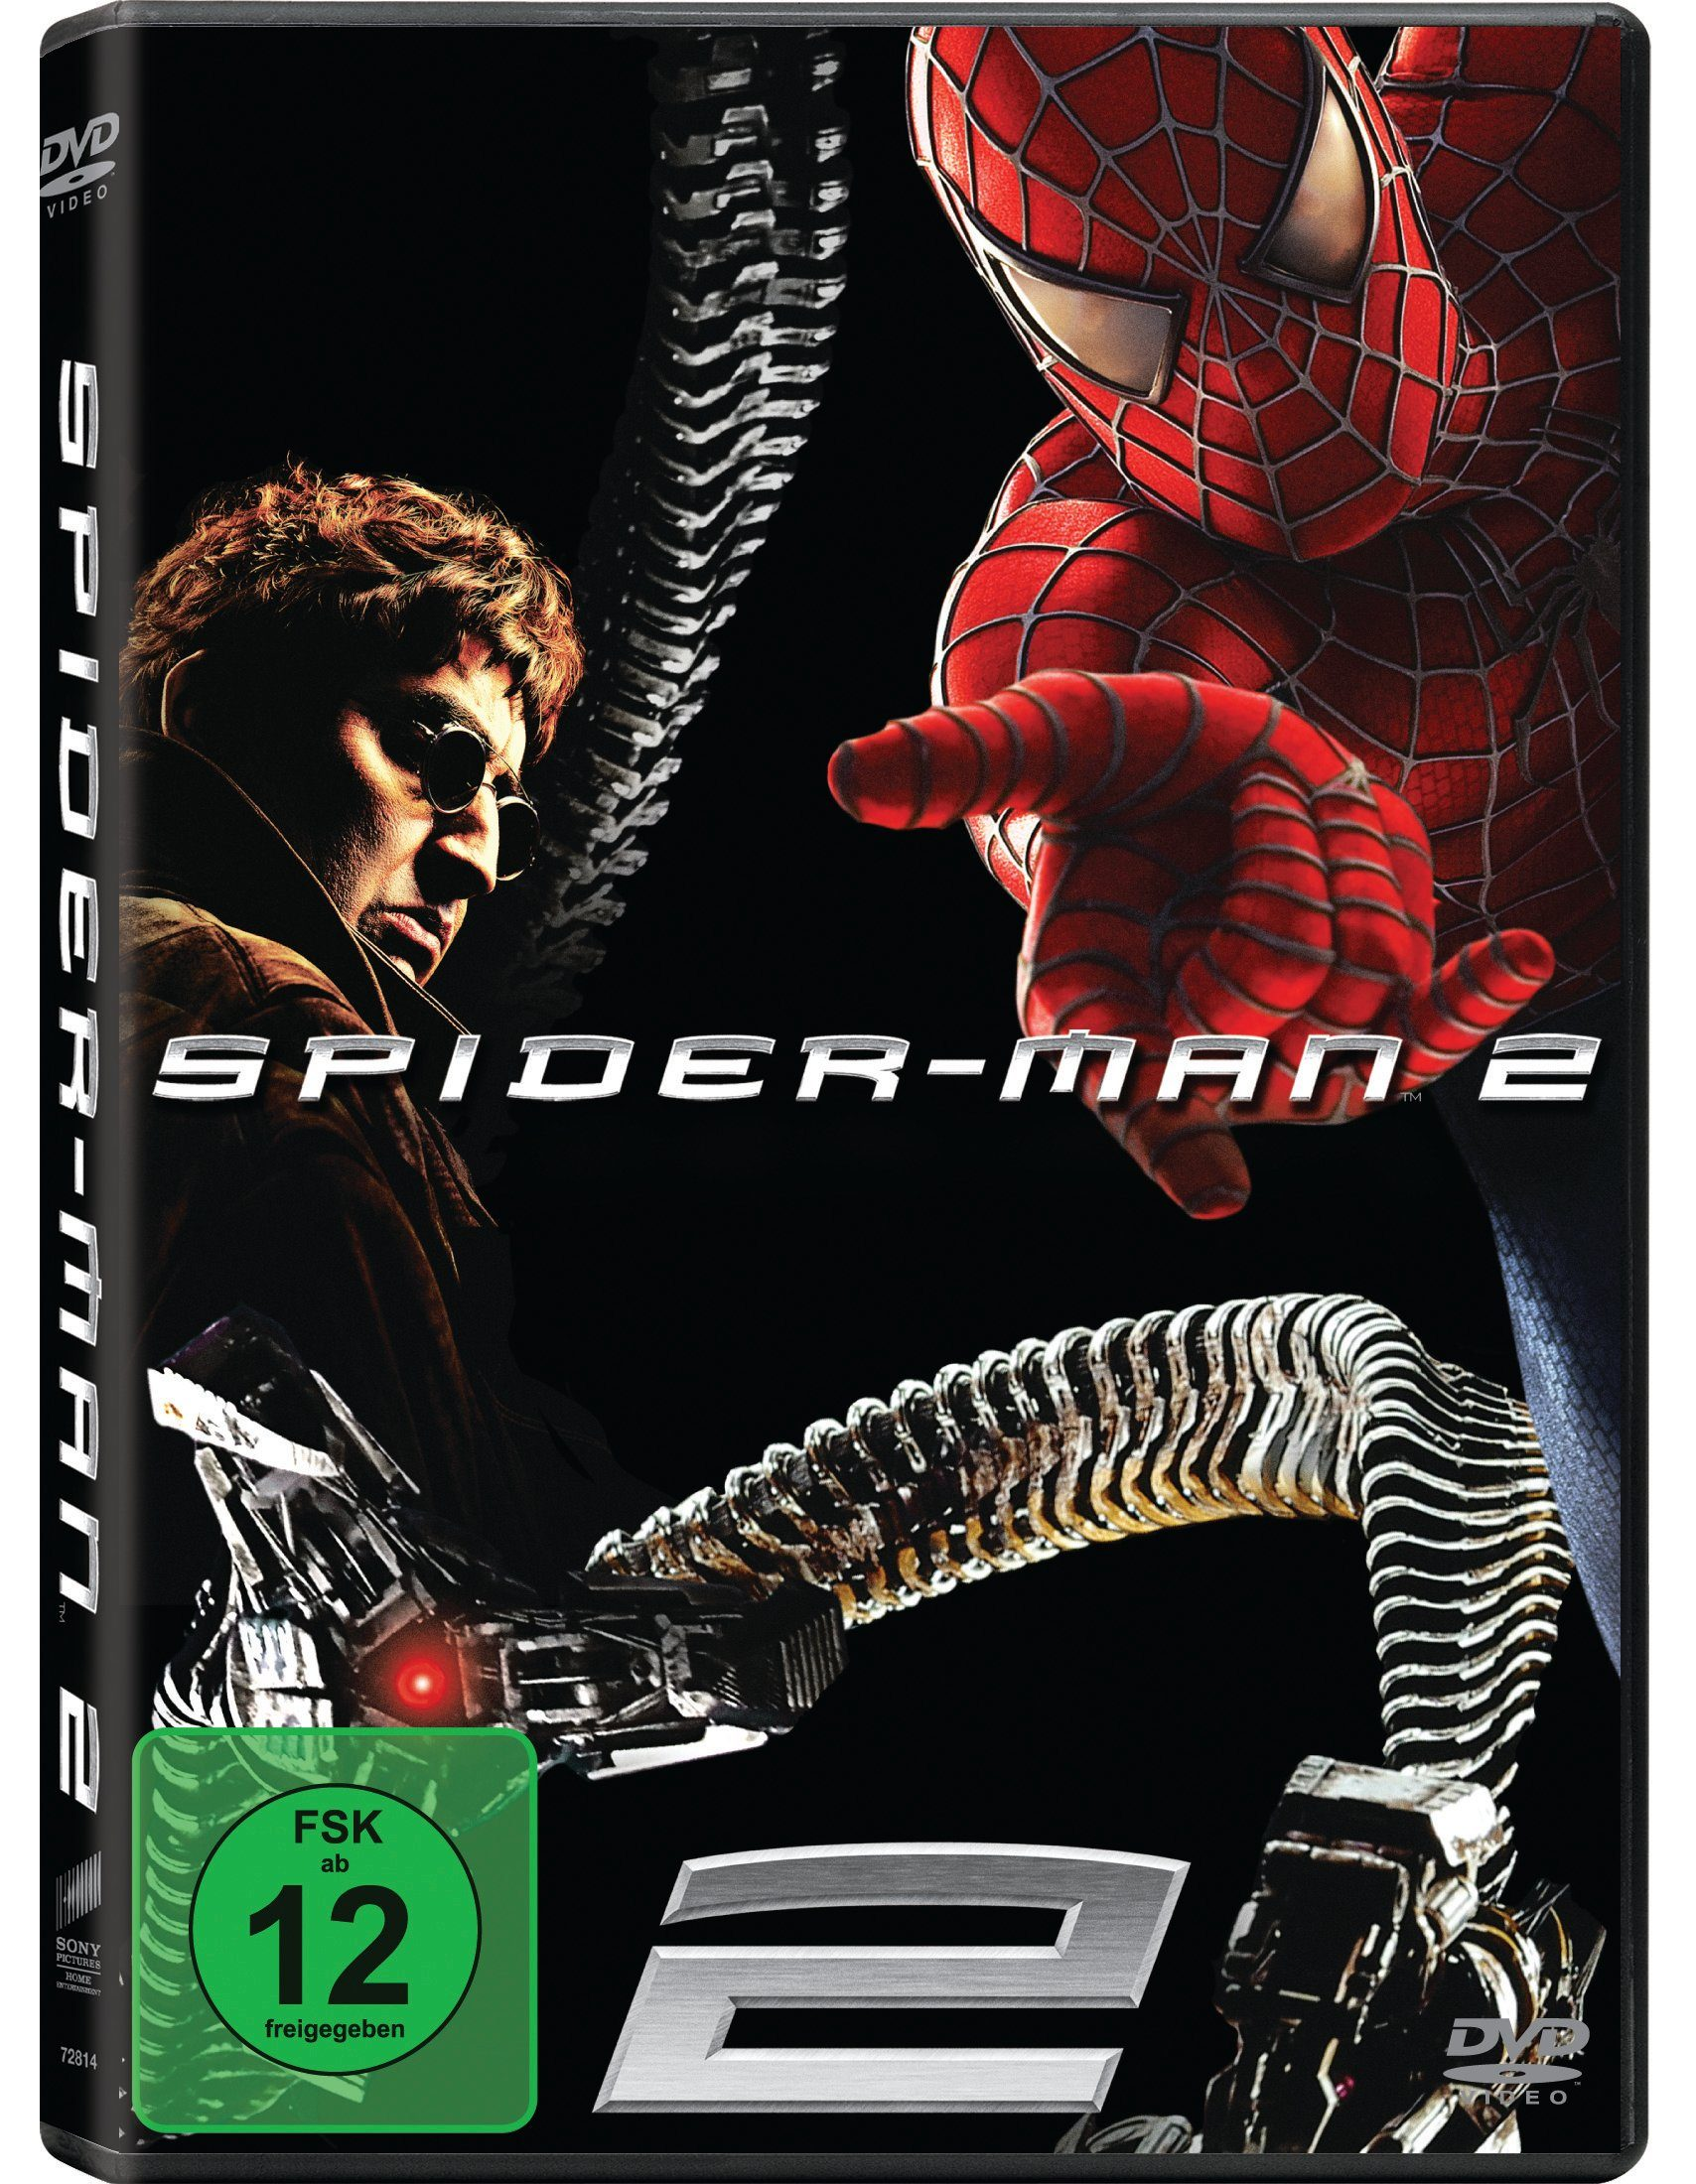 Sony Pictures DVD »Spider-Man 2«